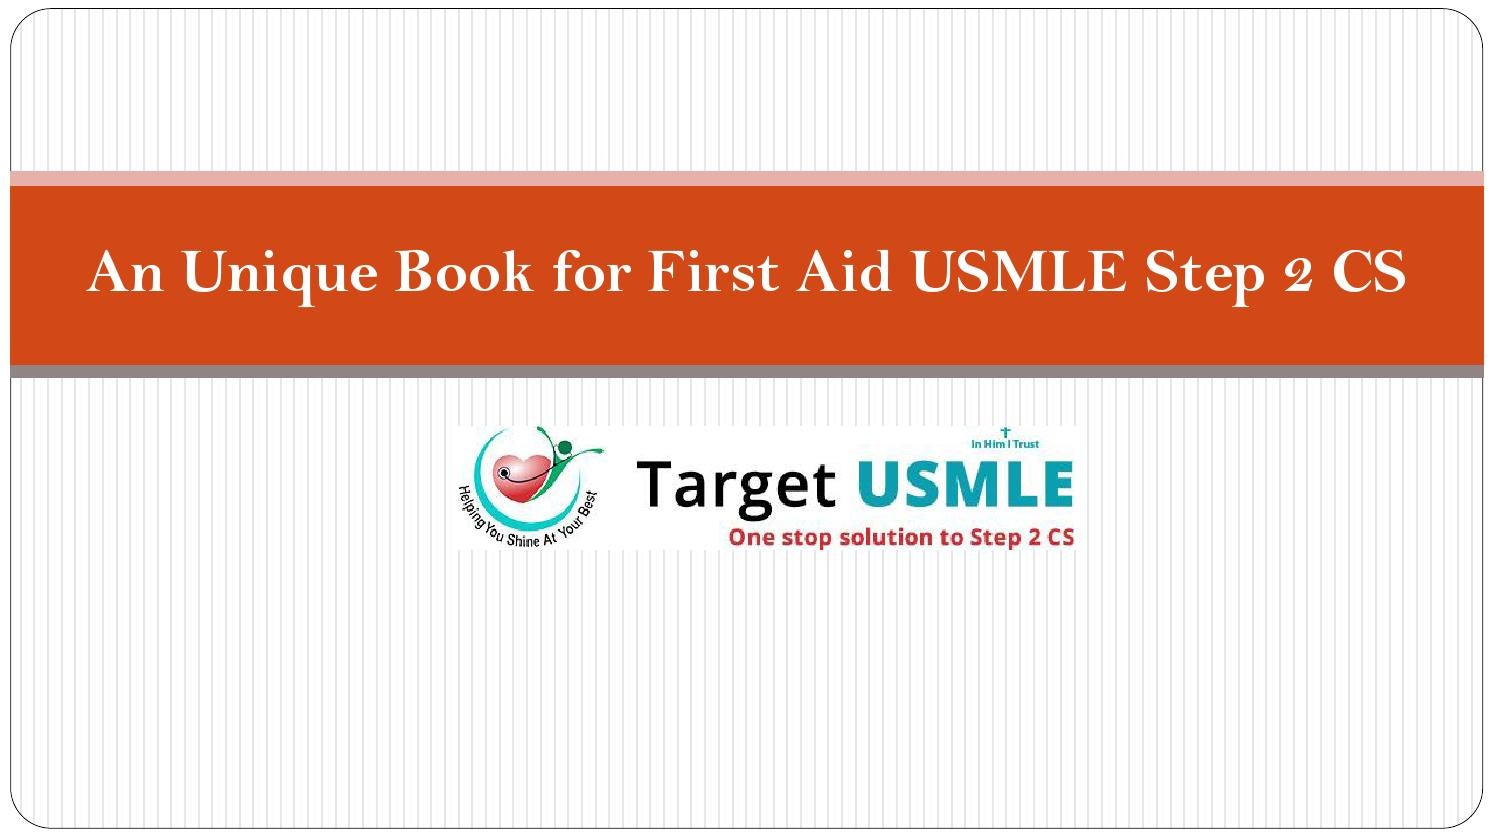 Additional First Aid Books